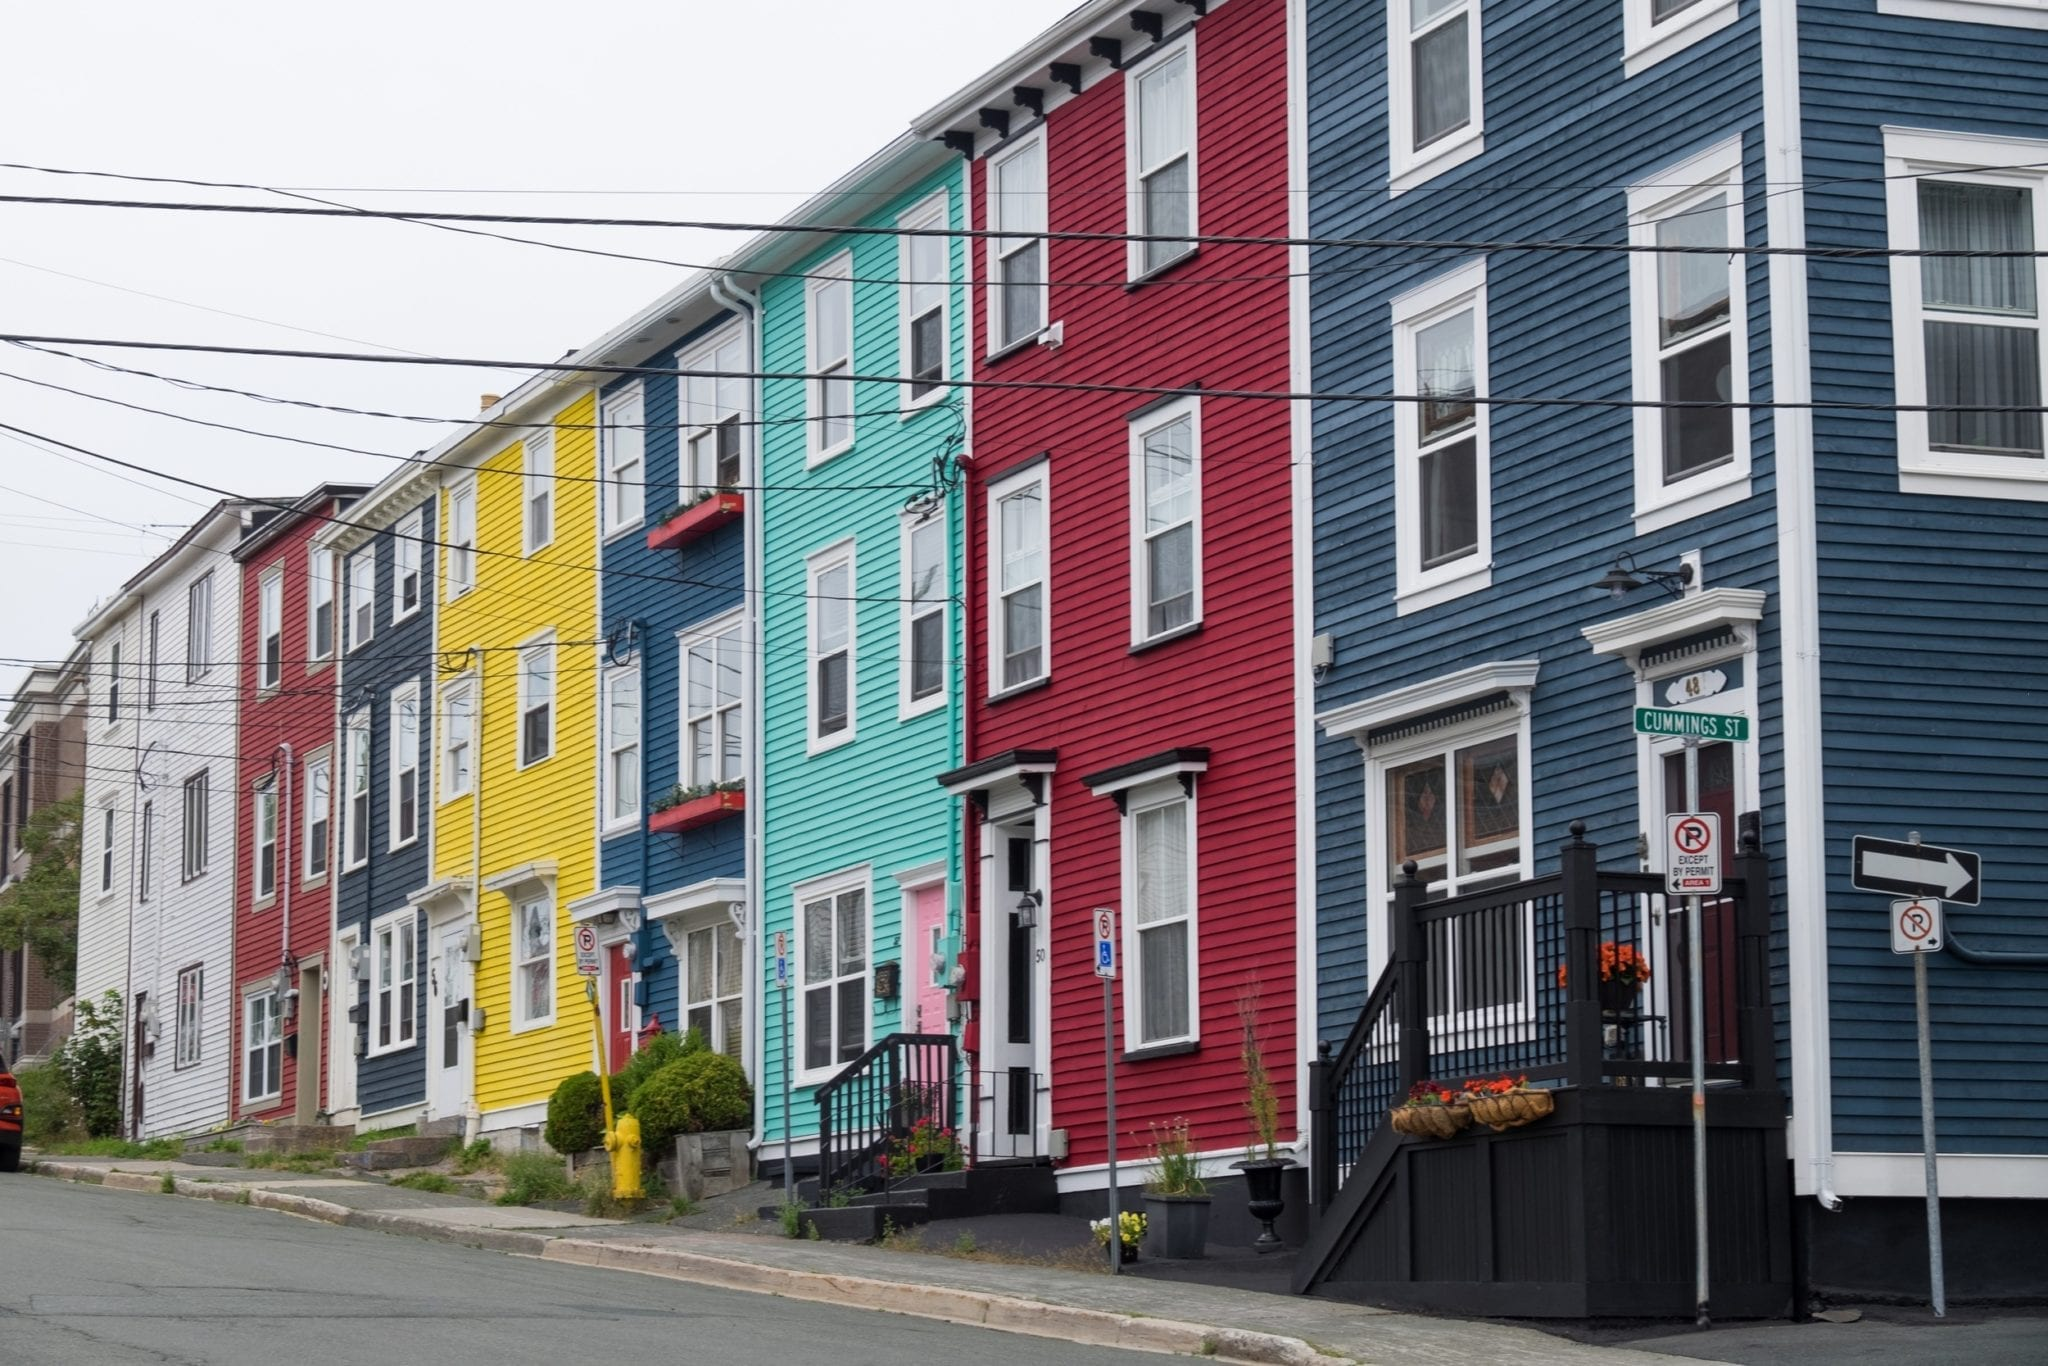 A row of brightly colored square houses in St. John's: yellowfins, blue, sea green, burgundy, and navy.